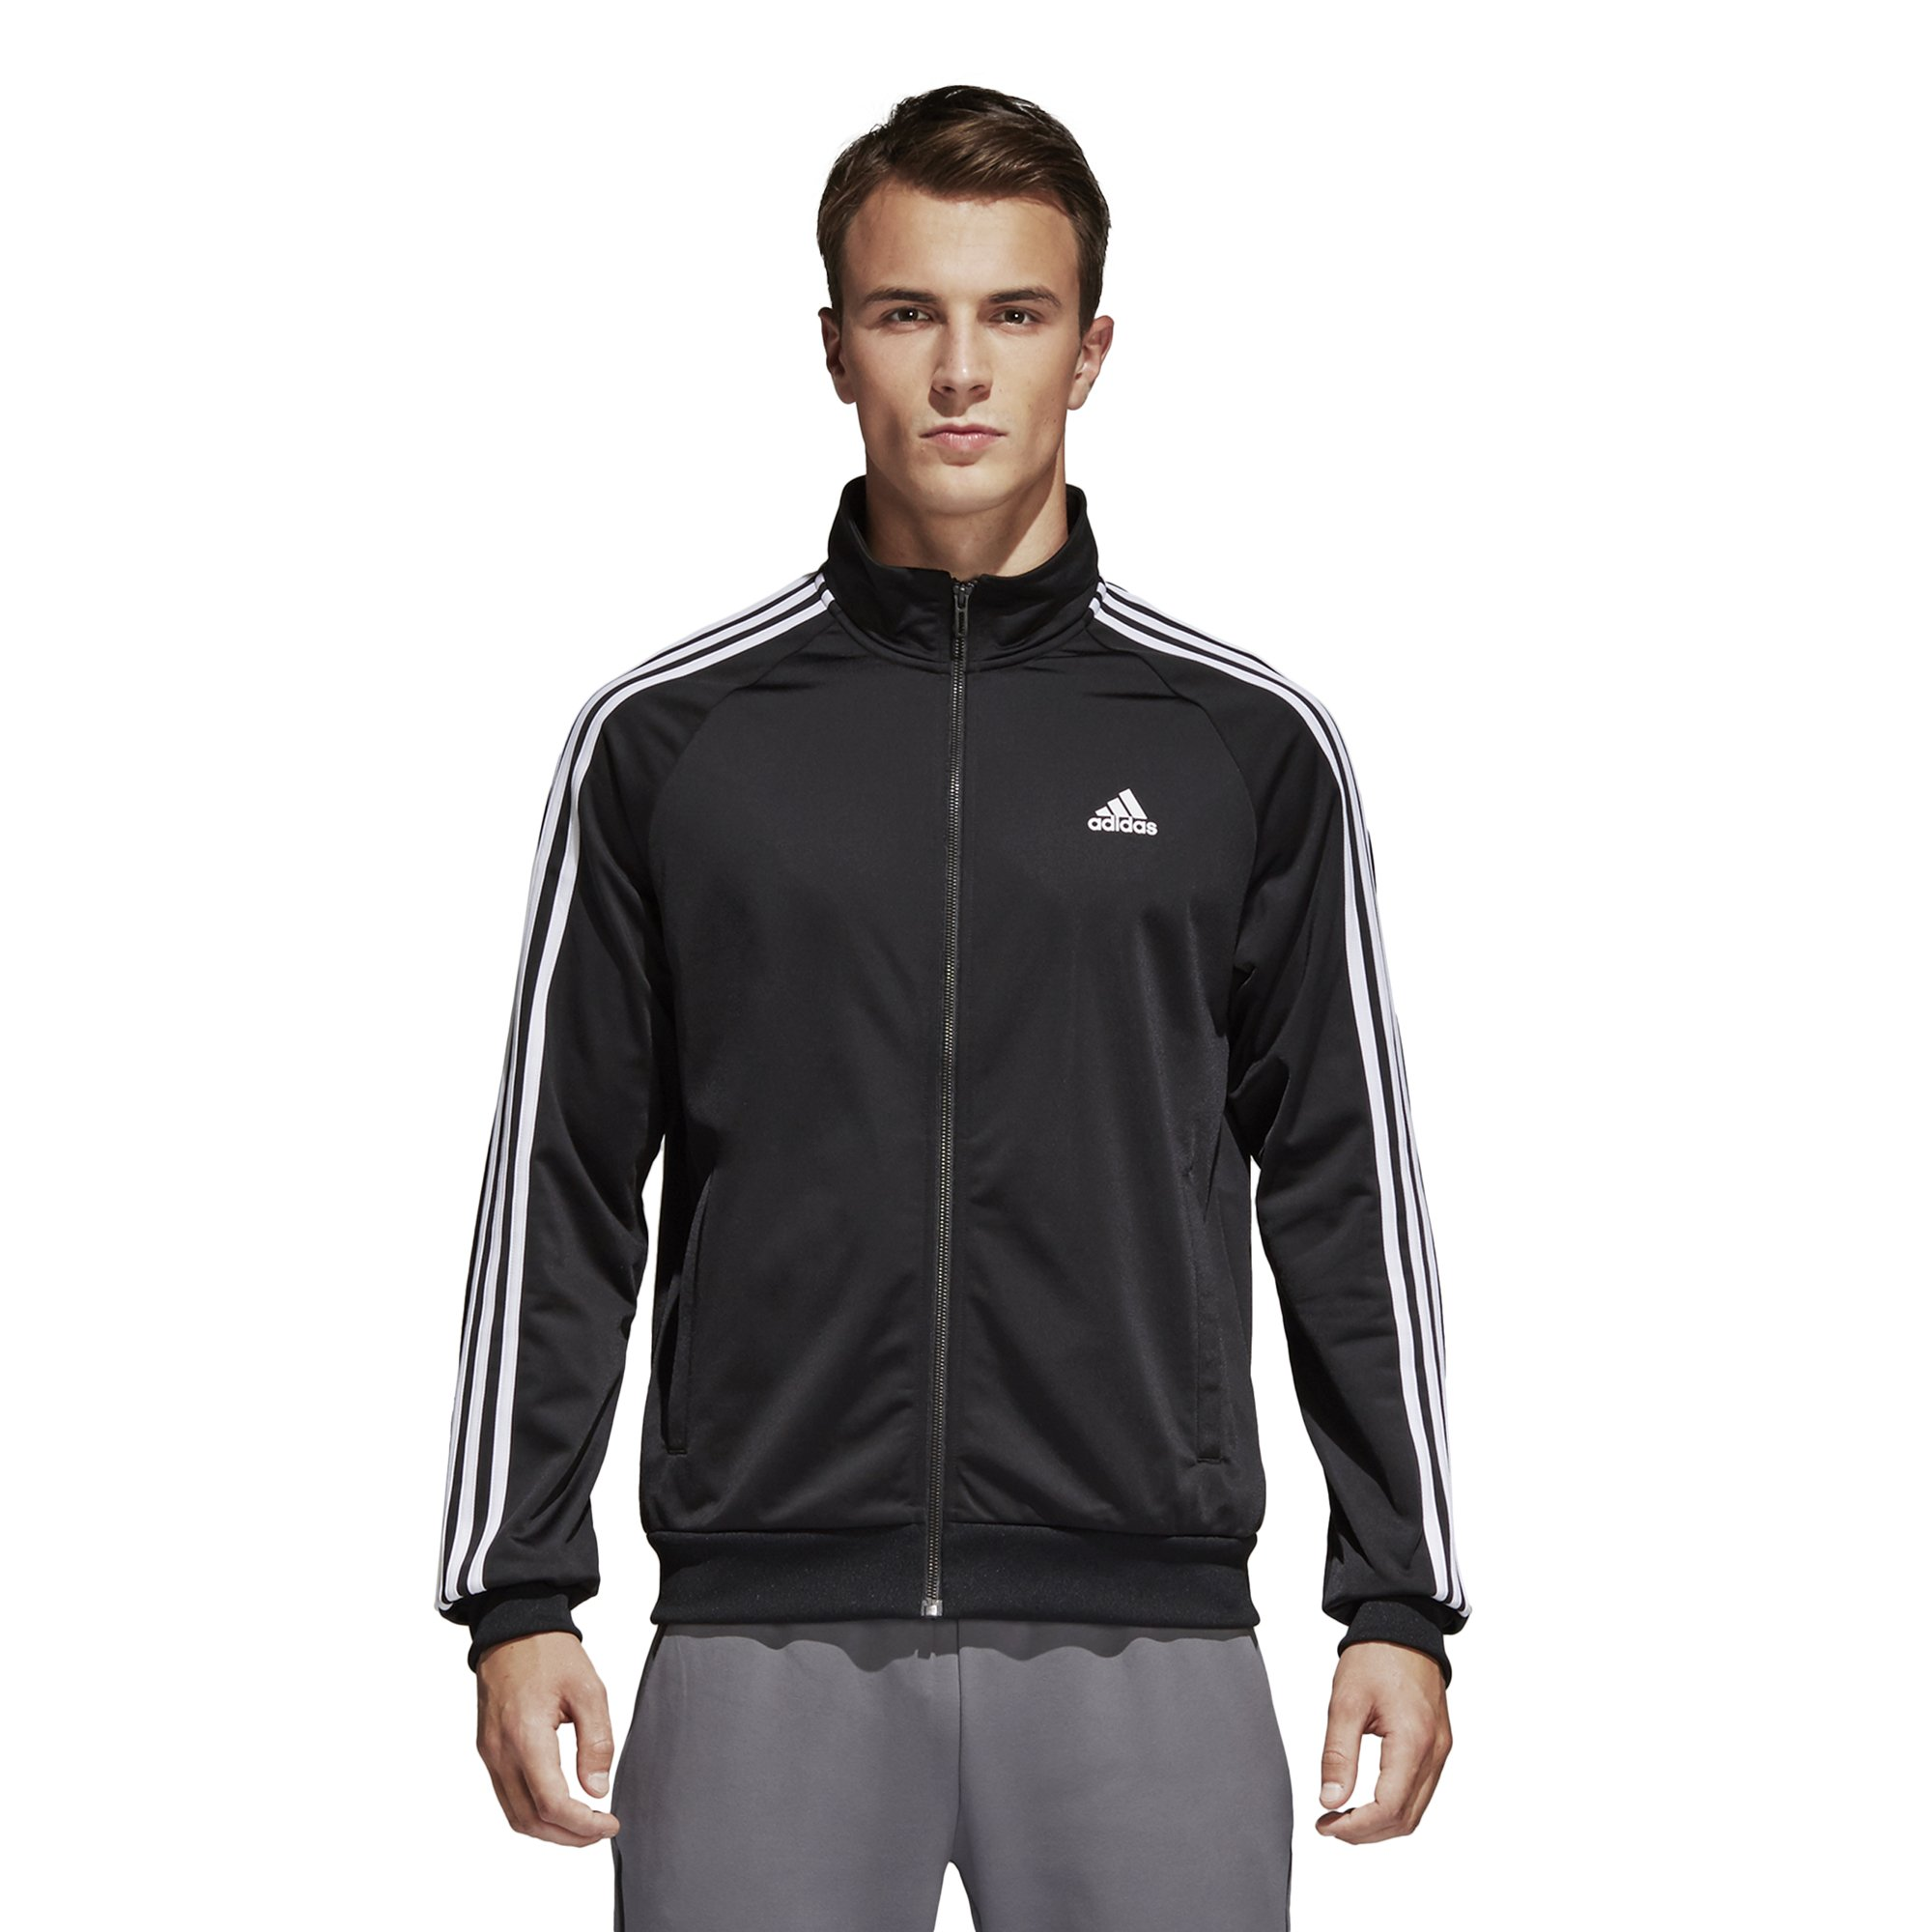 adidas Men's Essentials 3-Stripe Tricot Track Jacket, Black/White, Large